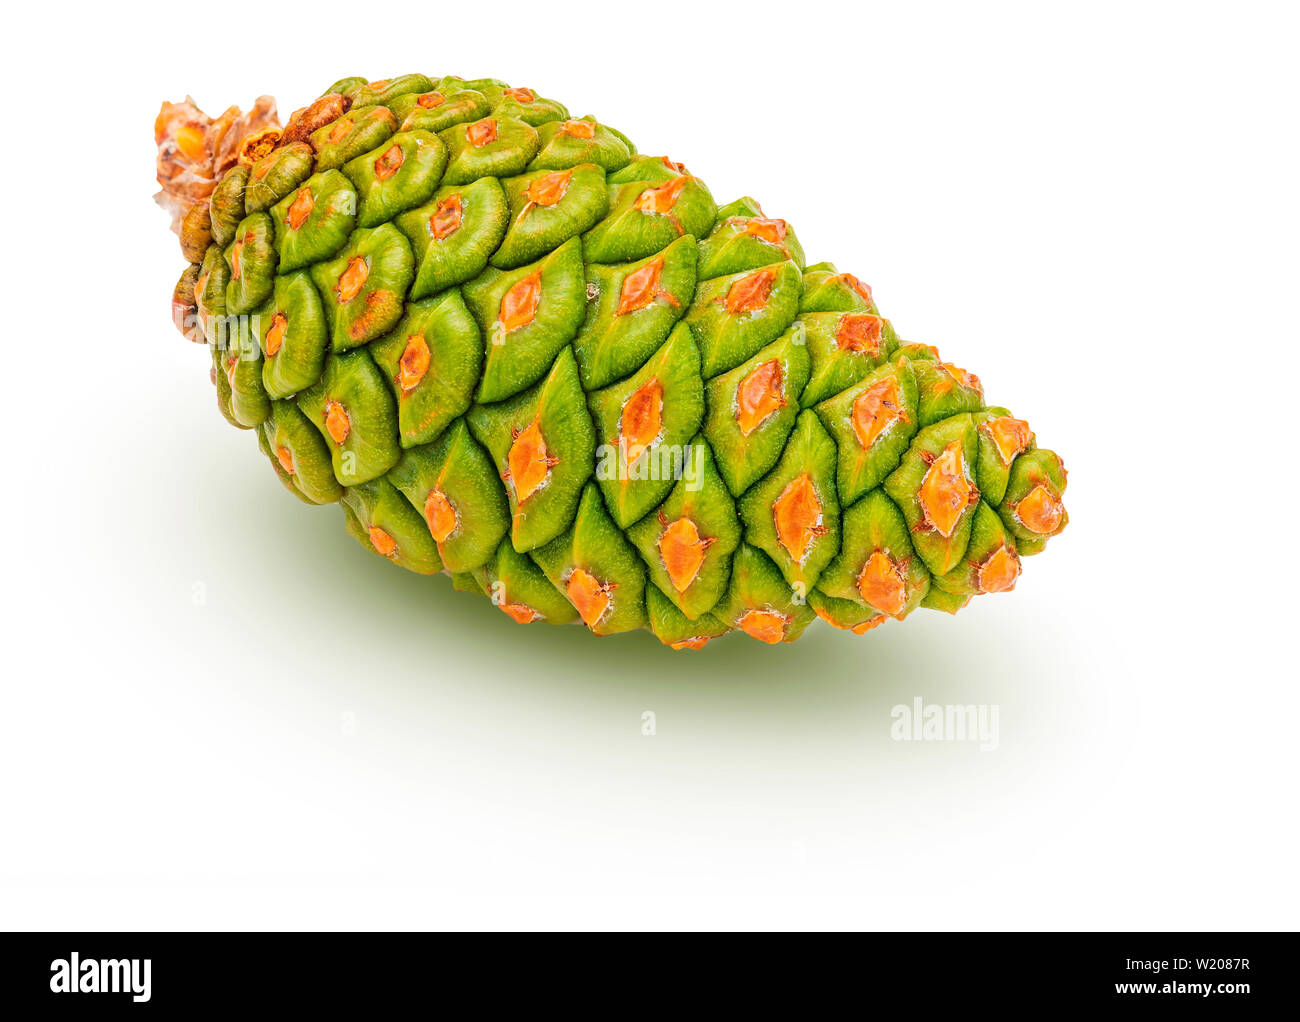 Green cone of wild pine (Pinus Silvestris L.). Isolated on white background. - Stock Image